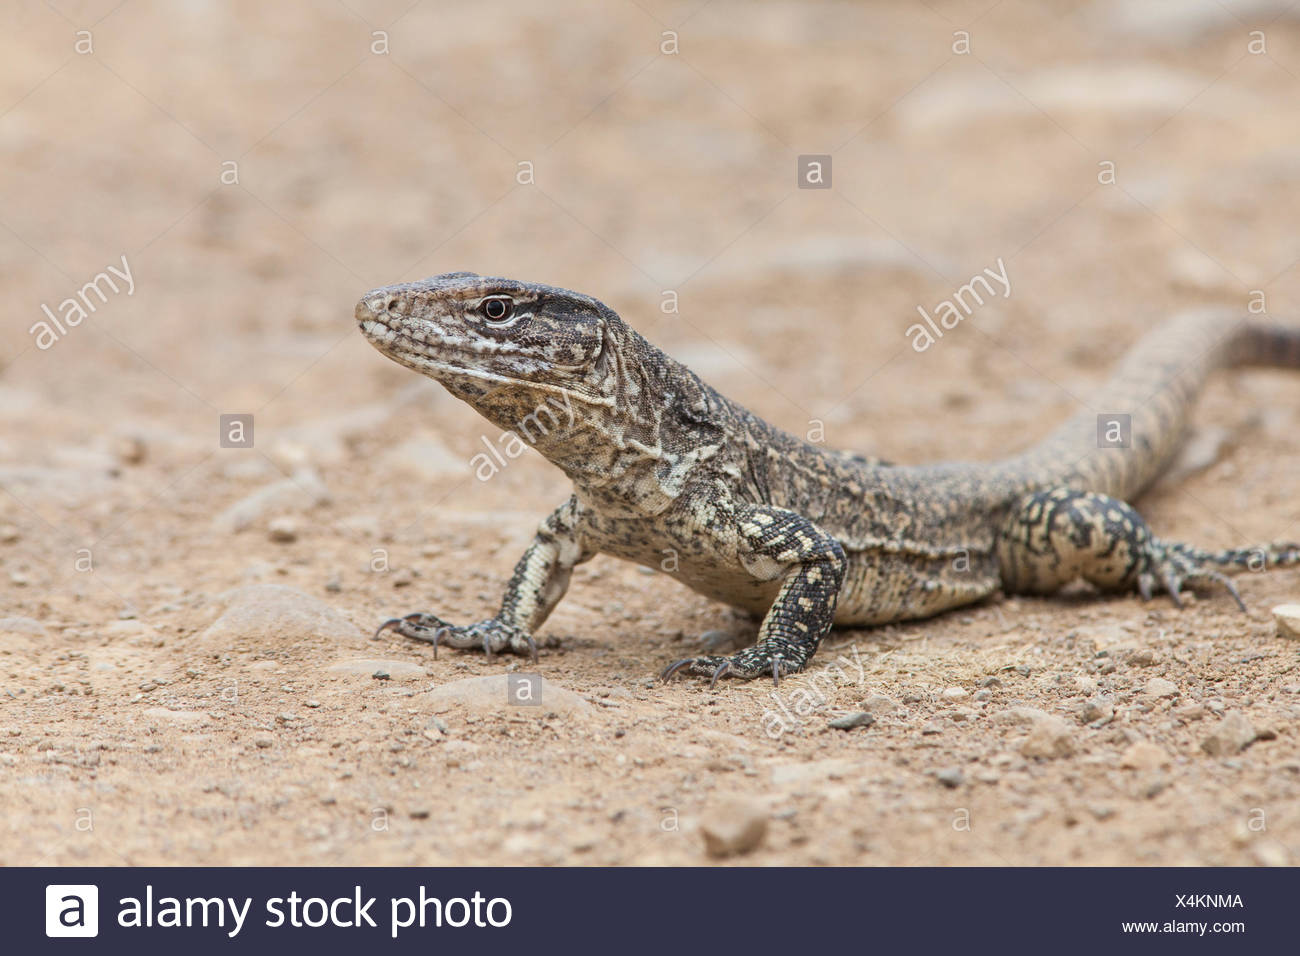 Portrait of a Tumbesian tegu lizard, Callopistes flavipunctatus. Stock Photo